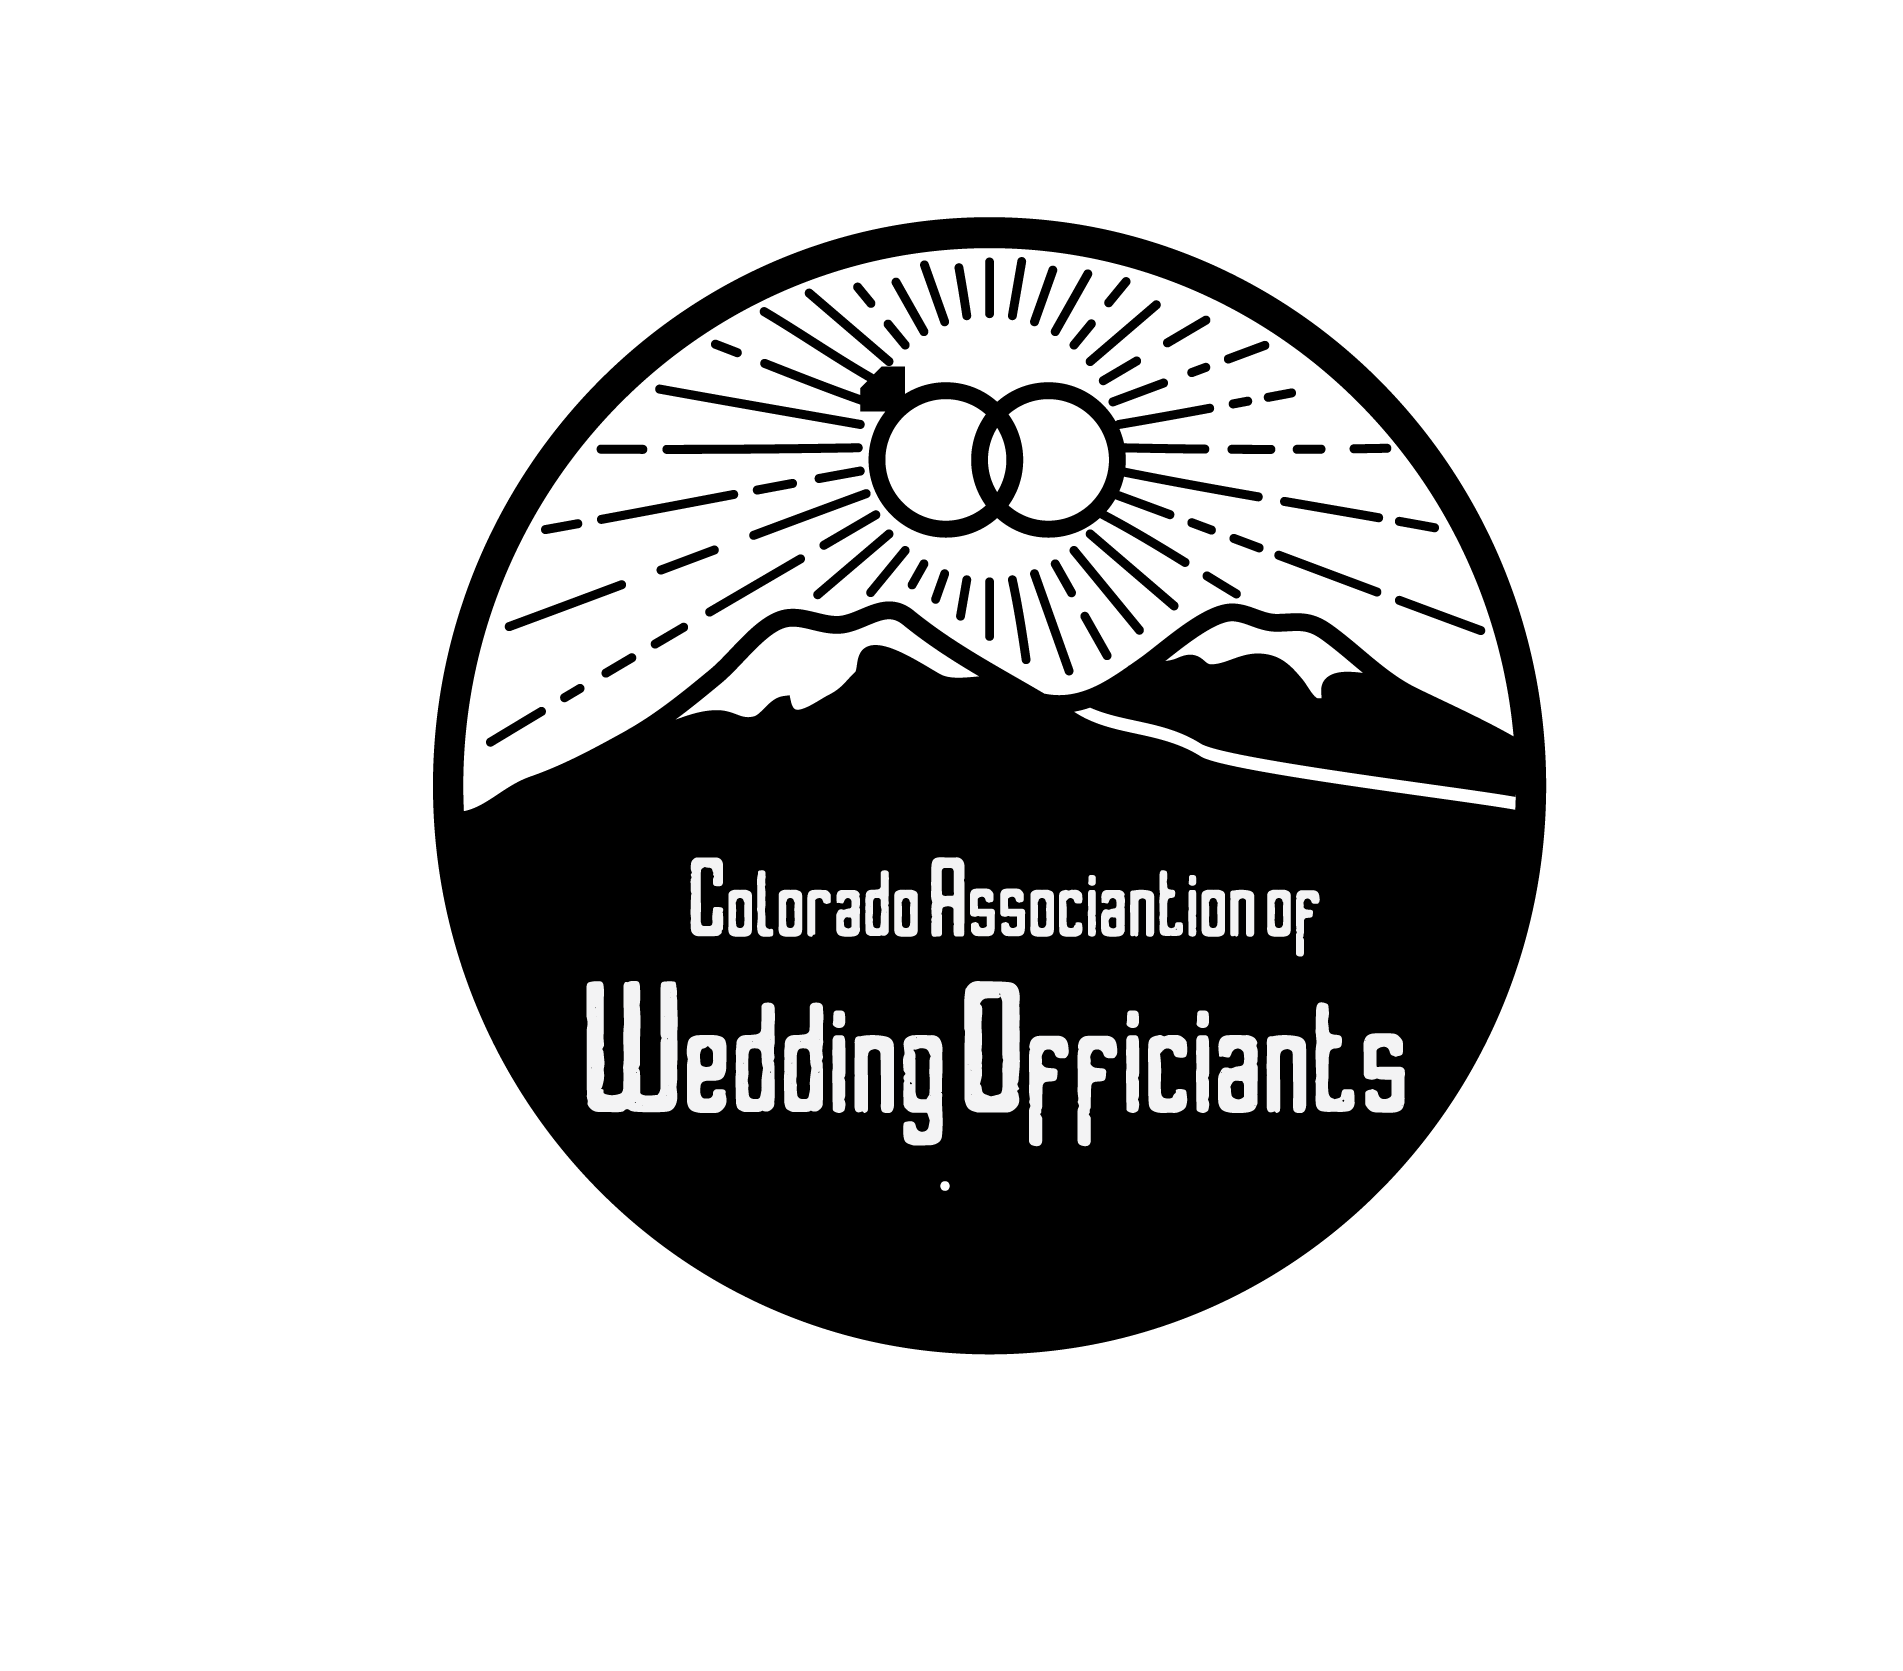 Colorado Association of Wedding Officiants